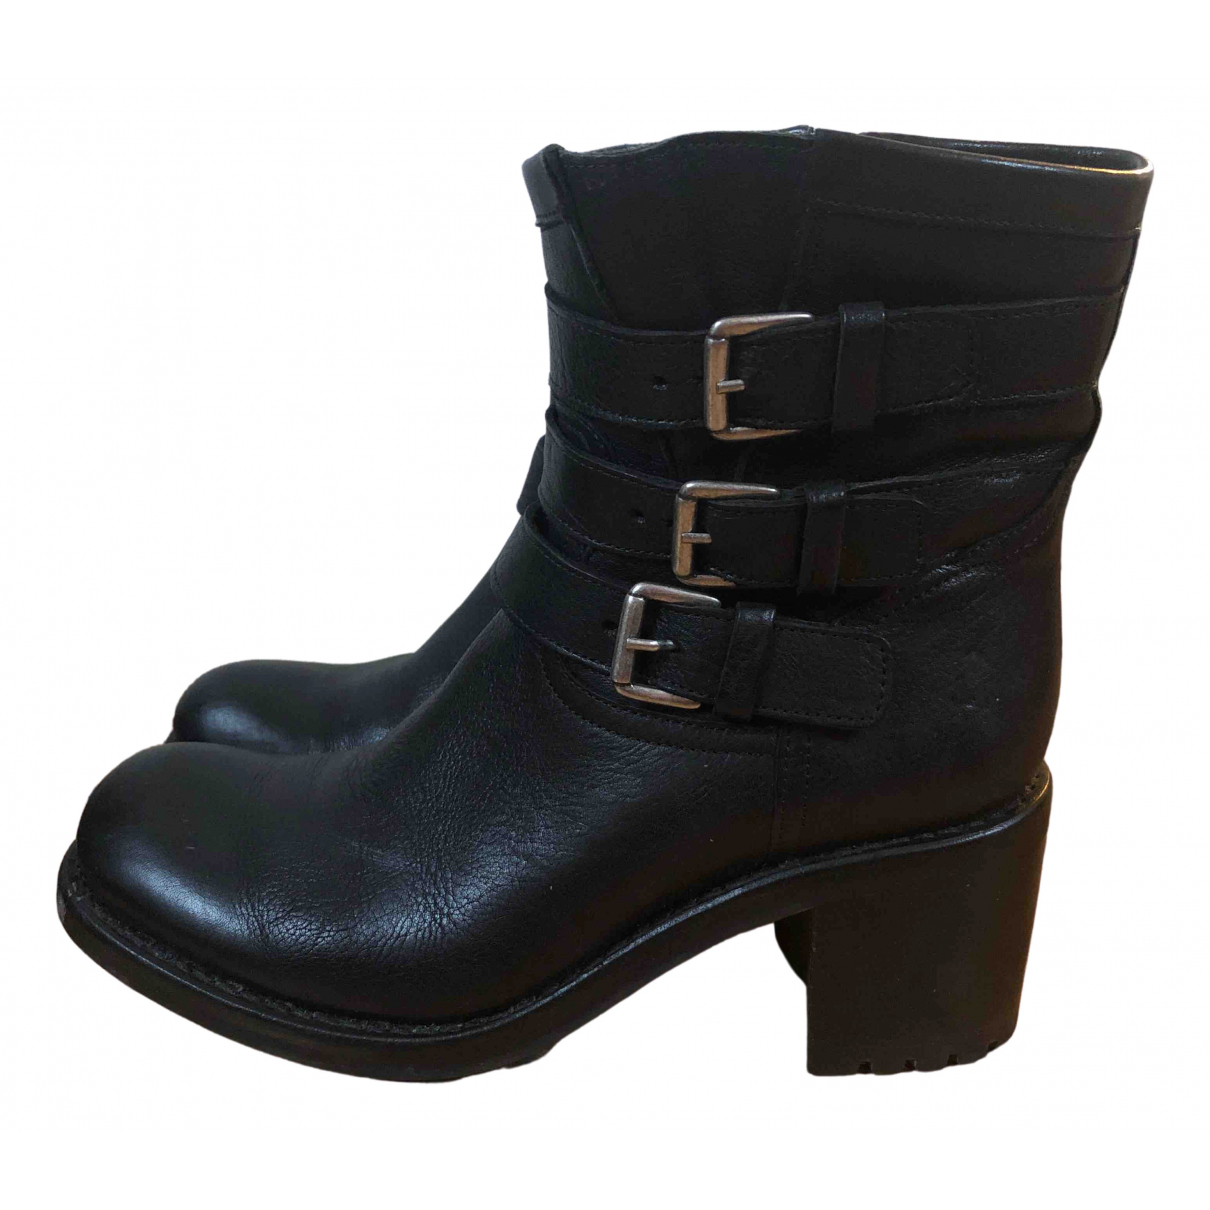 Free Lance Geronimo Black Leather Ankle boots for Women 37.5 EU